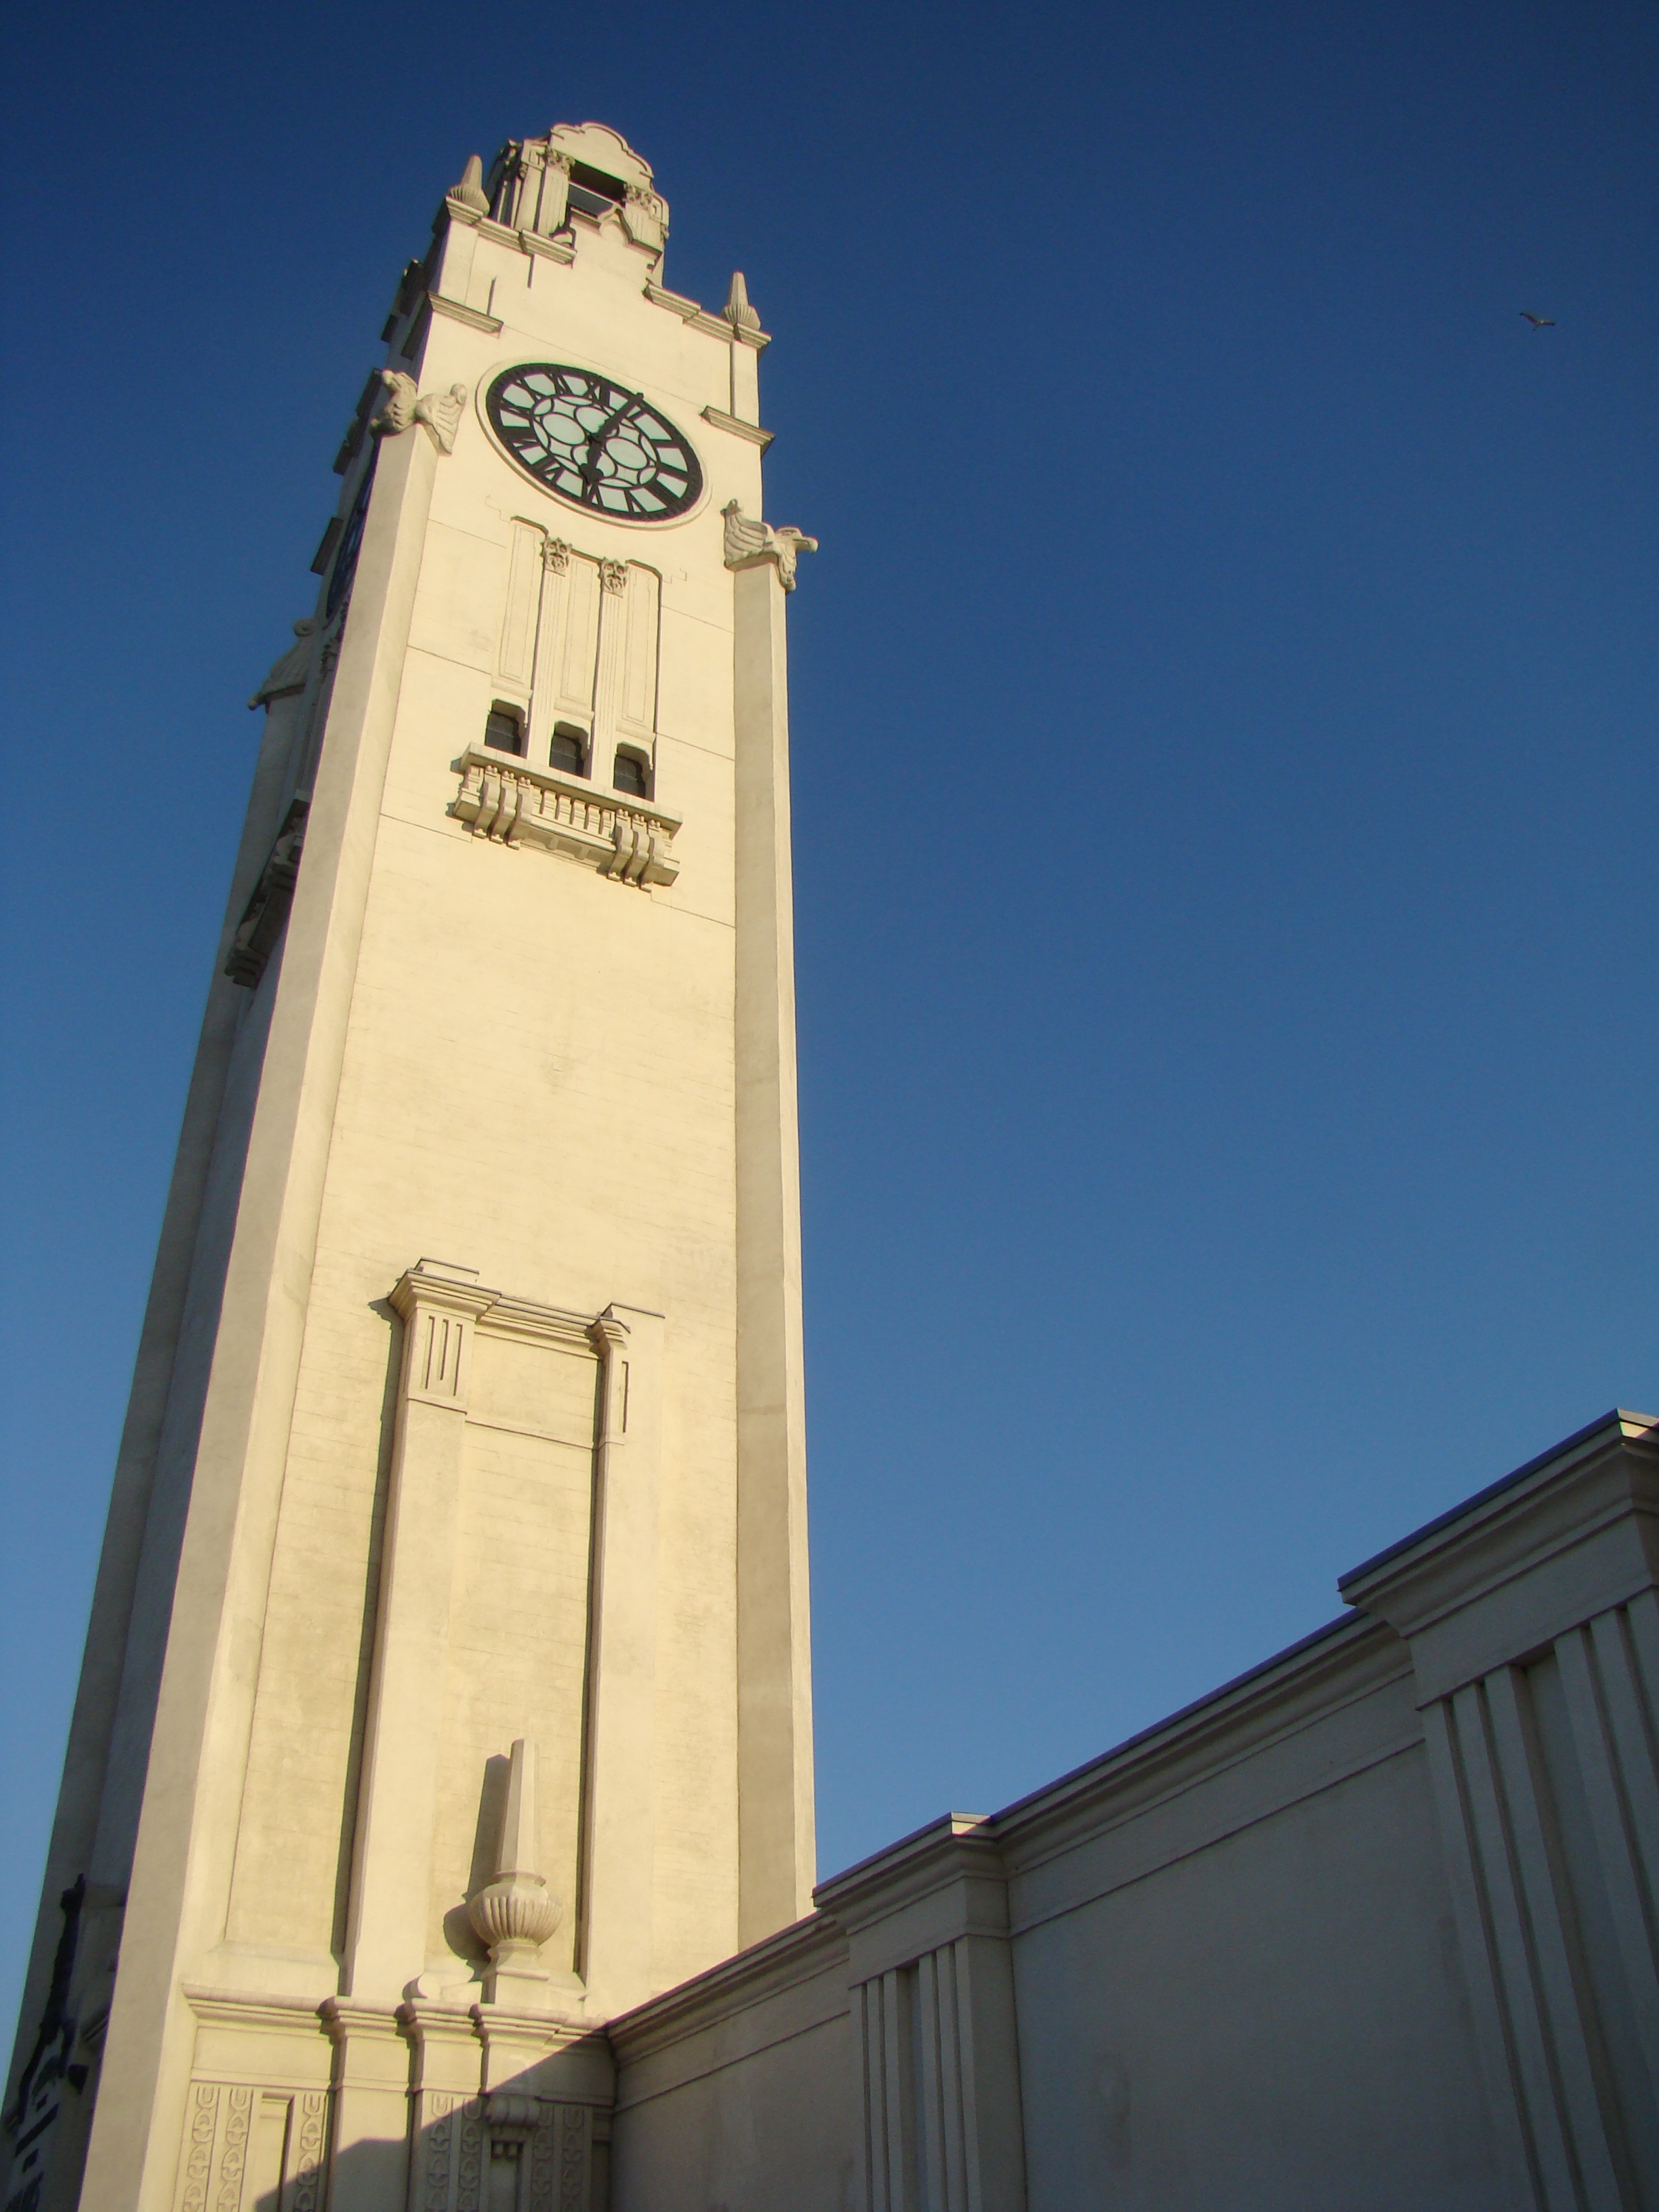 time right simons clock tower proposal